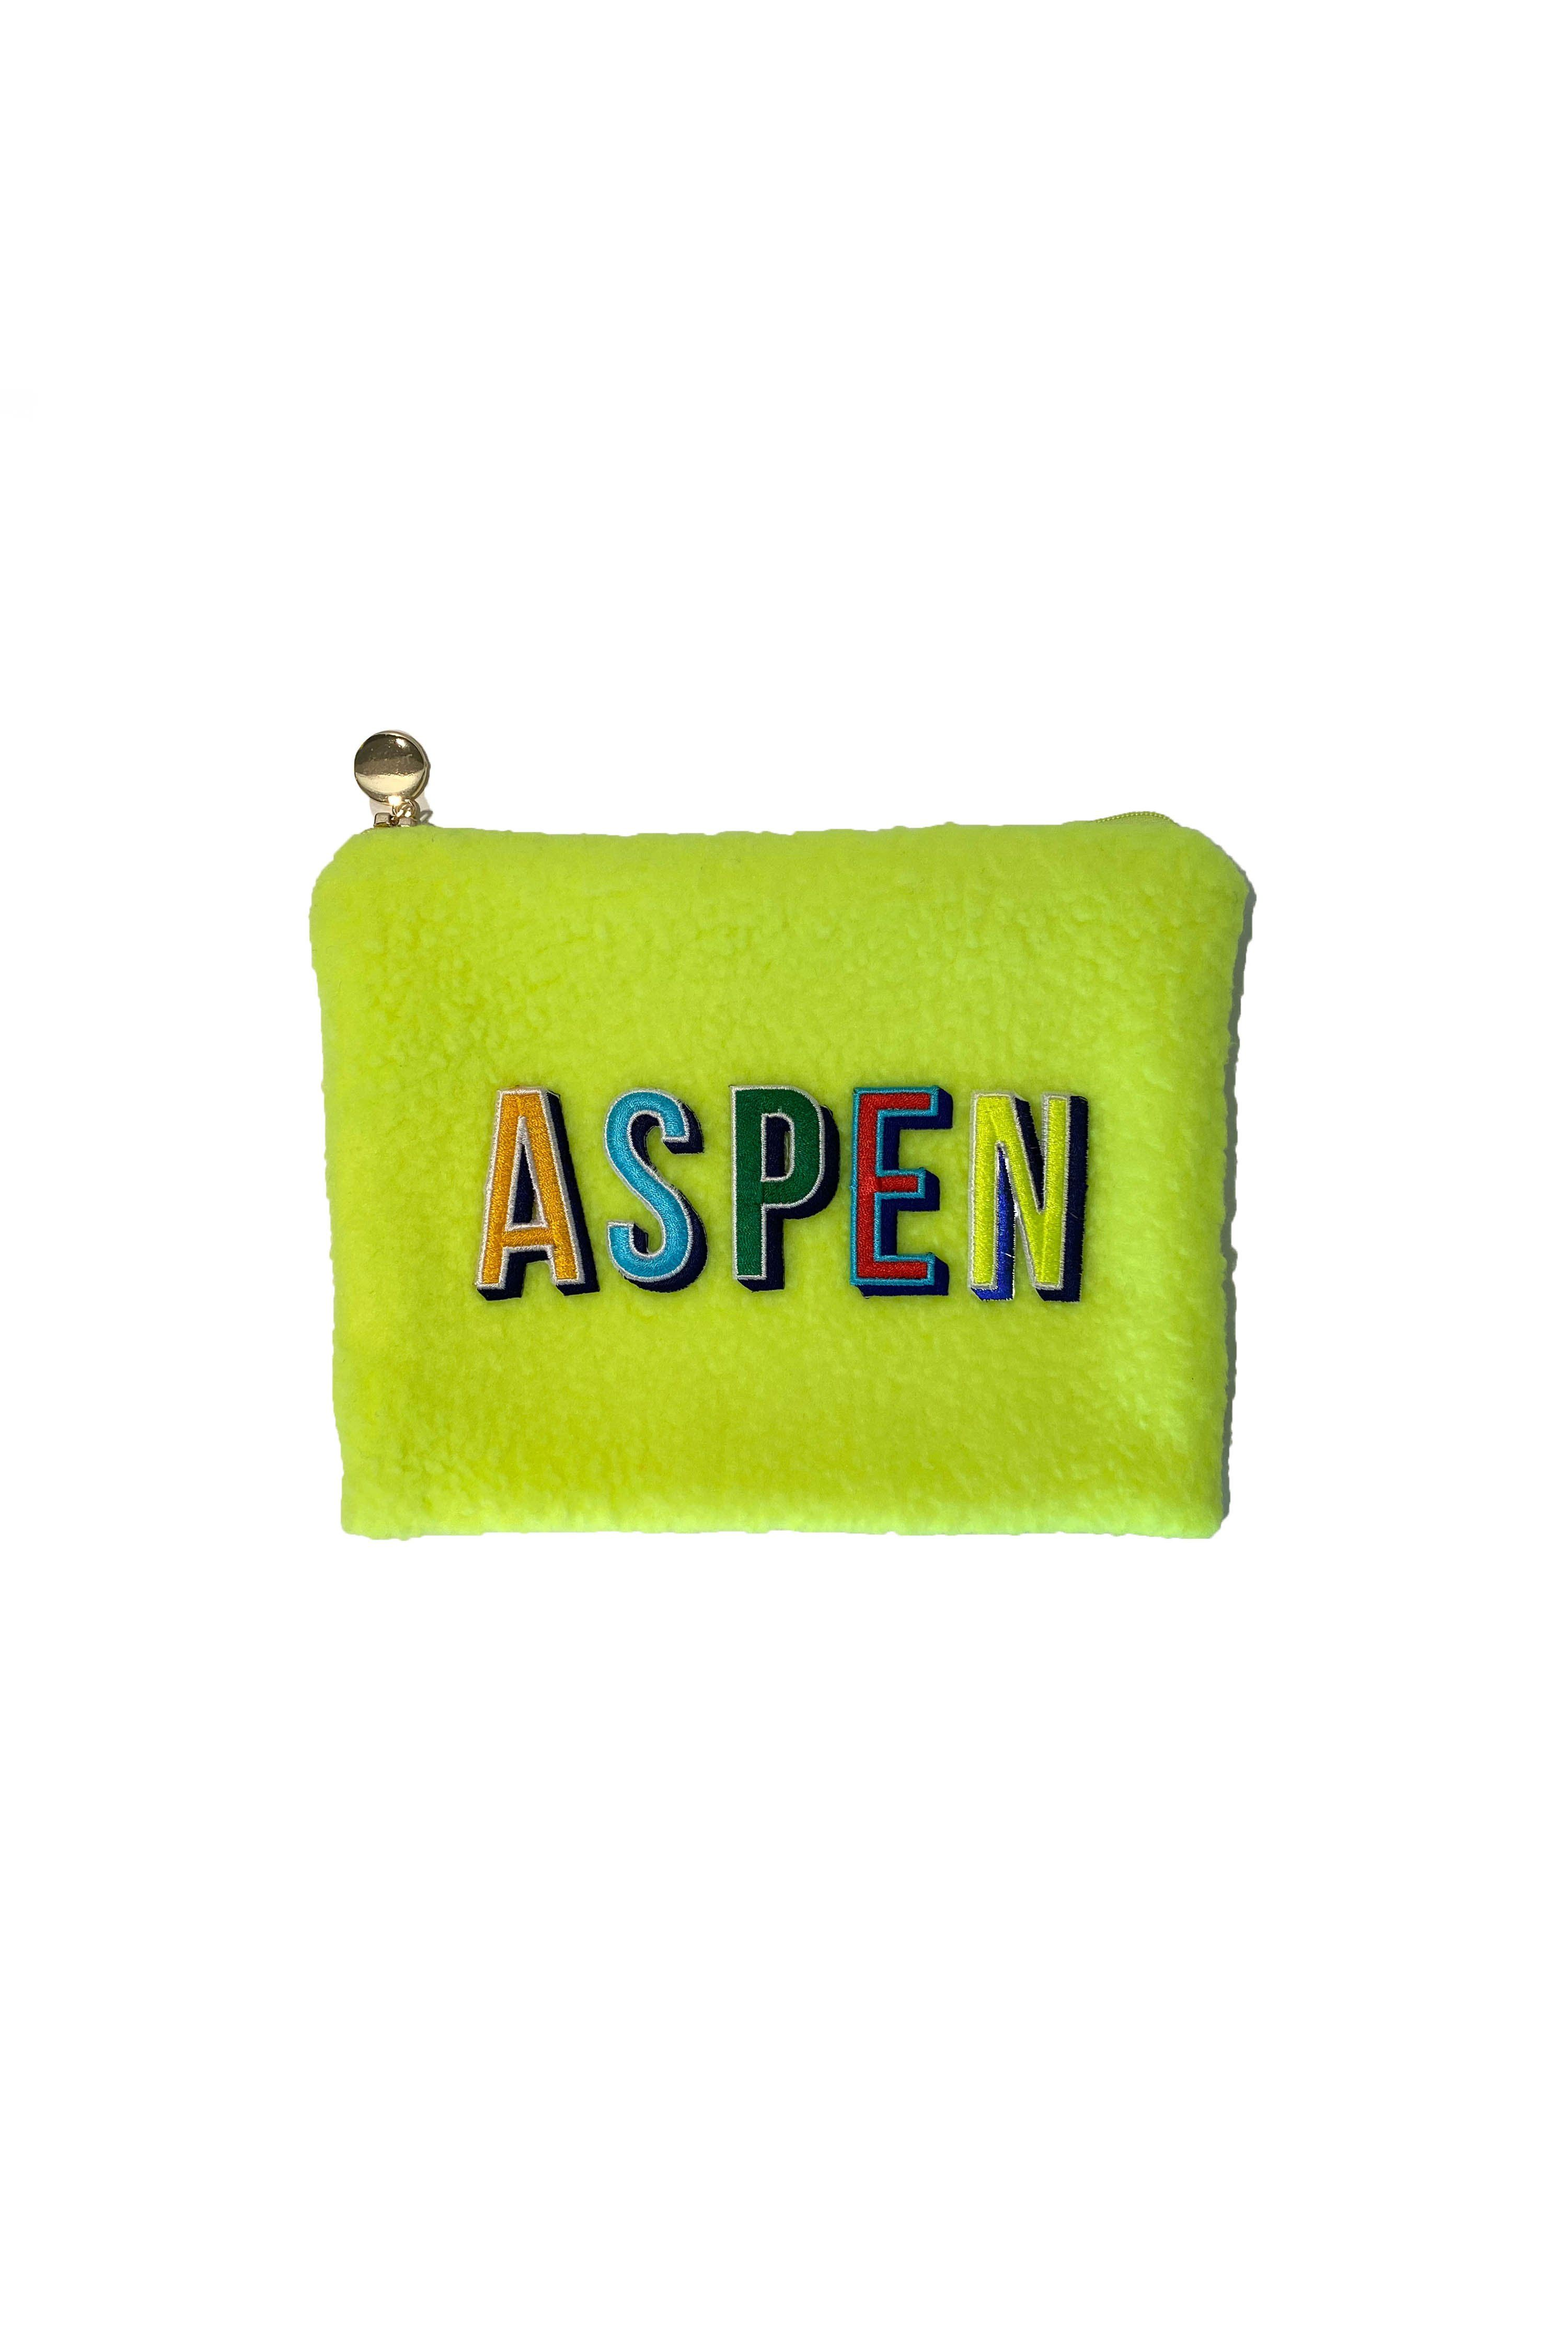 Aspen Make-up Beutel in Gelb